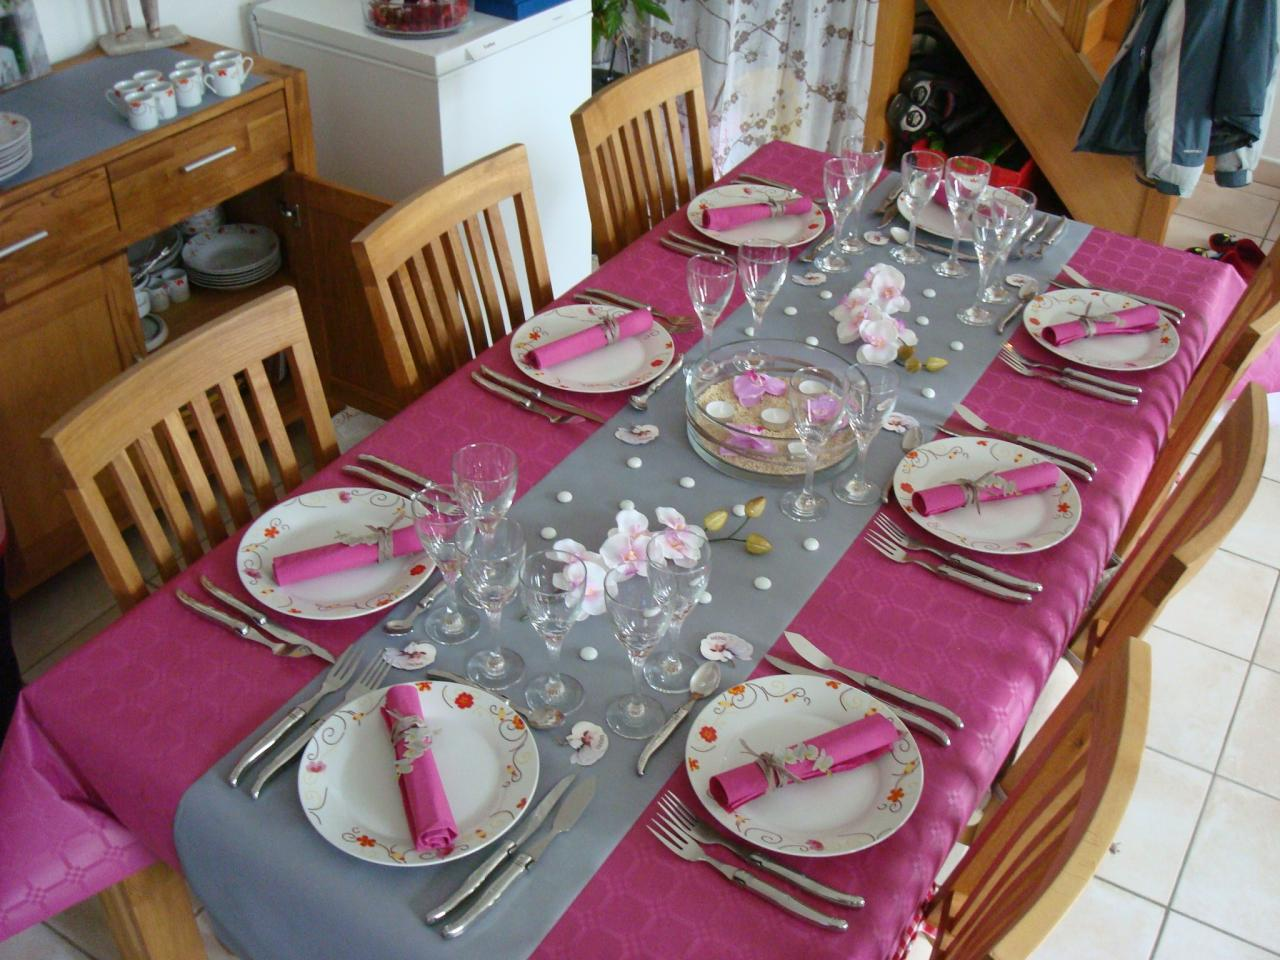 Photos bild galeria d coration table anniversaire for Decoration de table idees